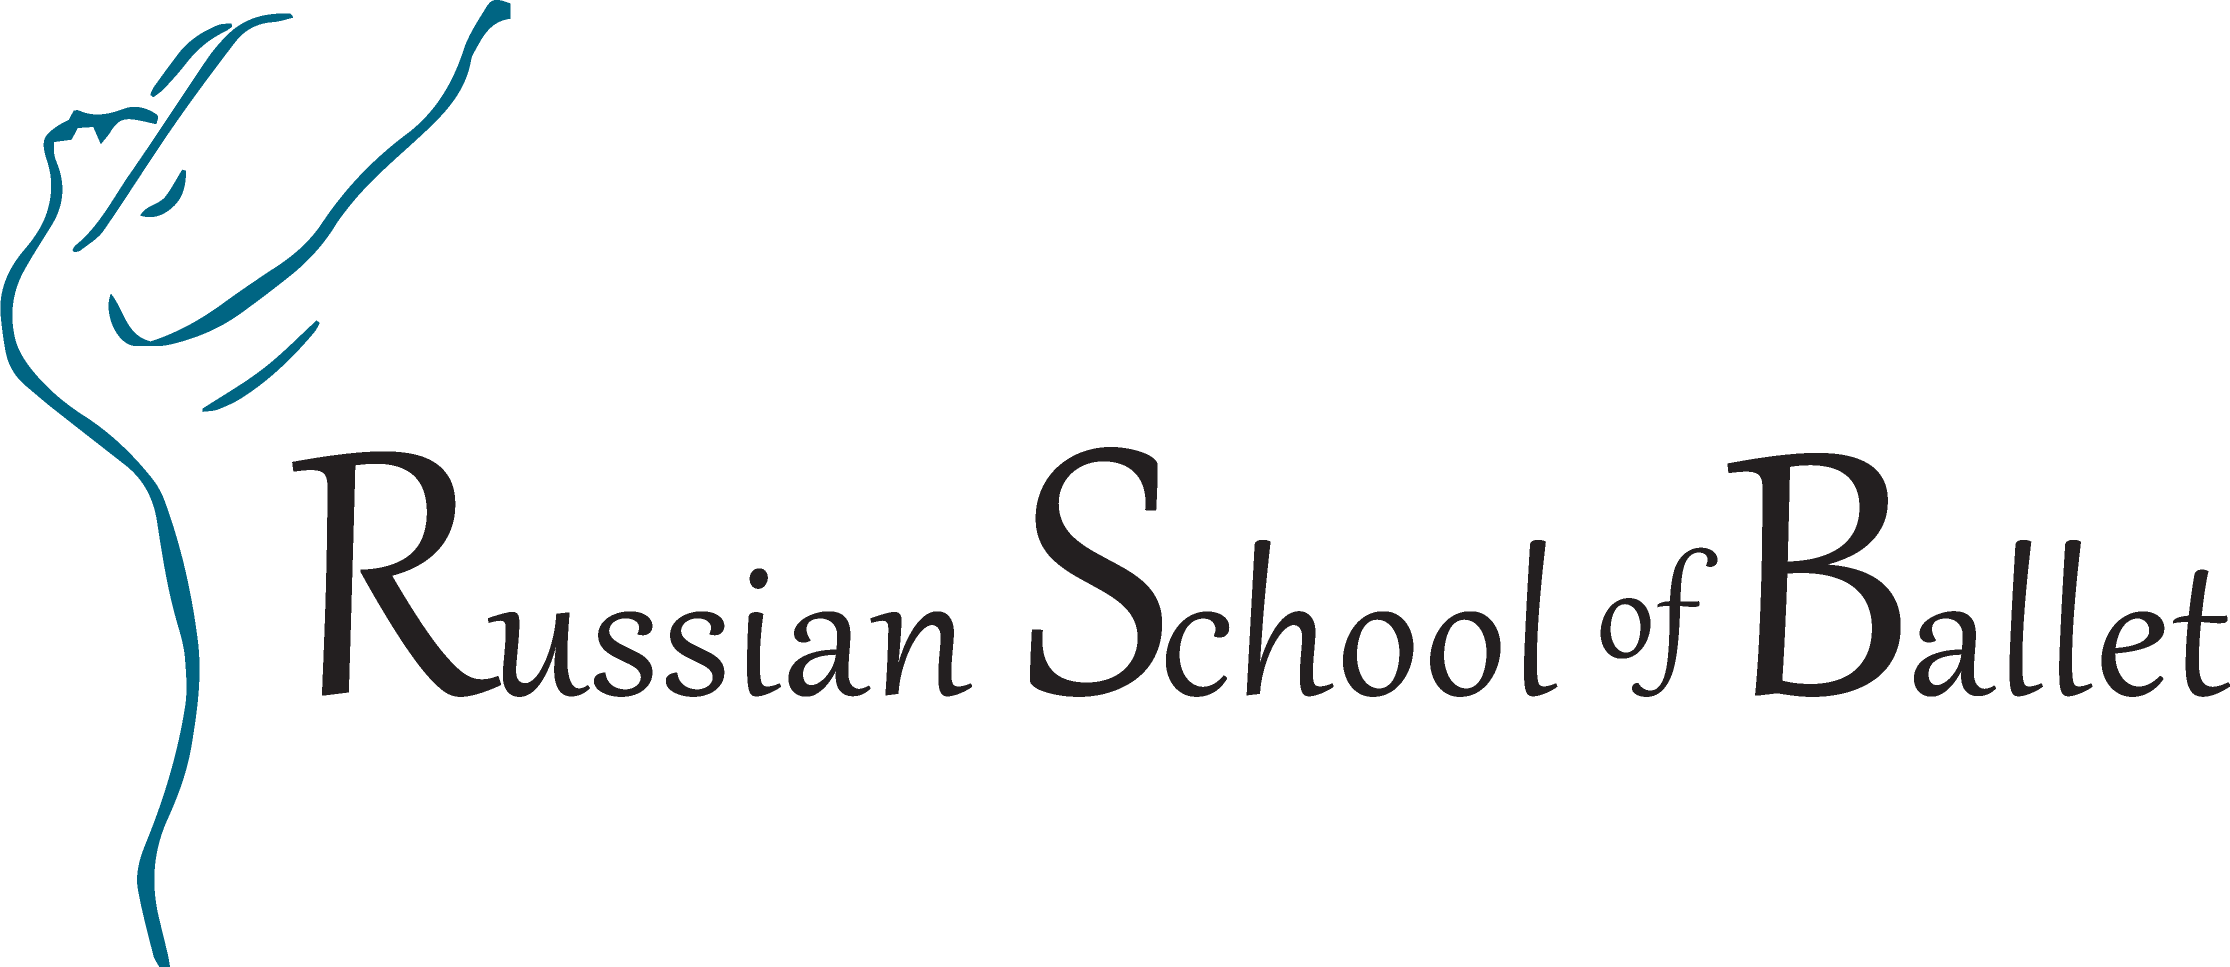 RussianSchoolofBallet_no_white_space